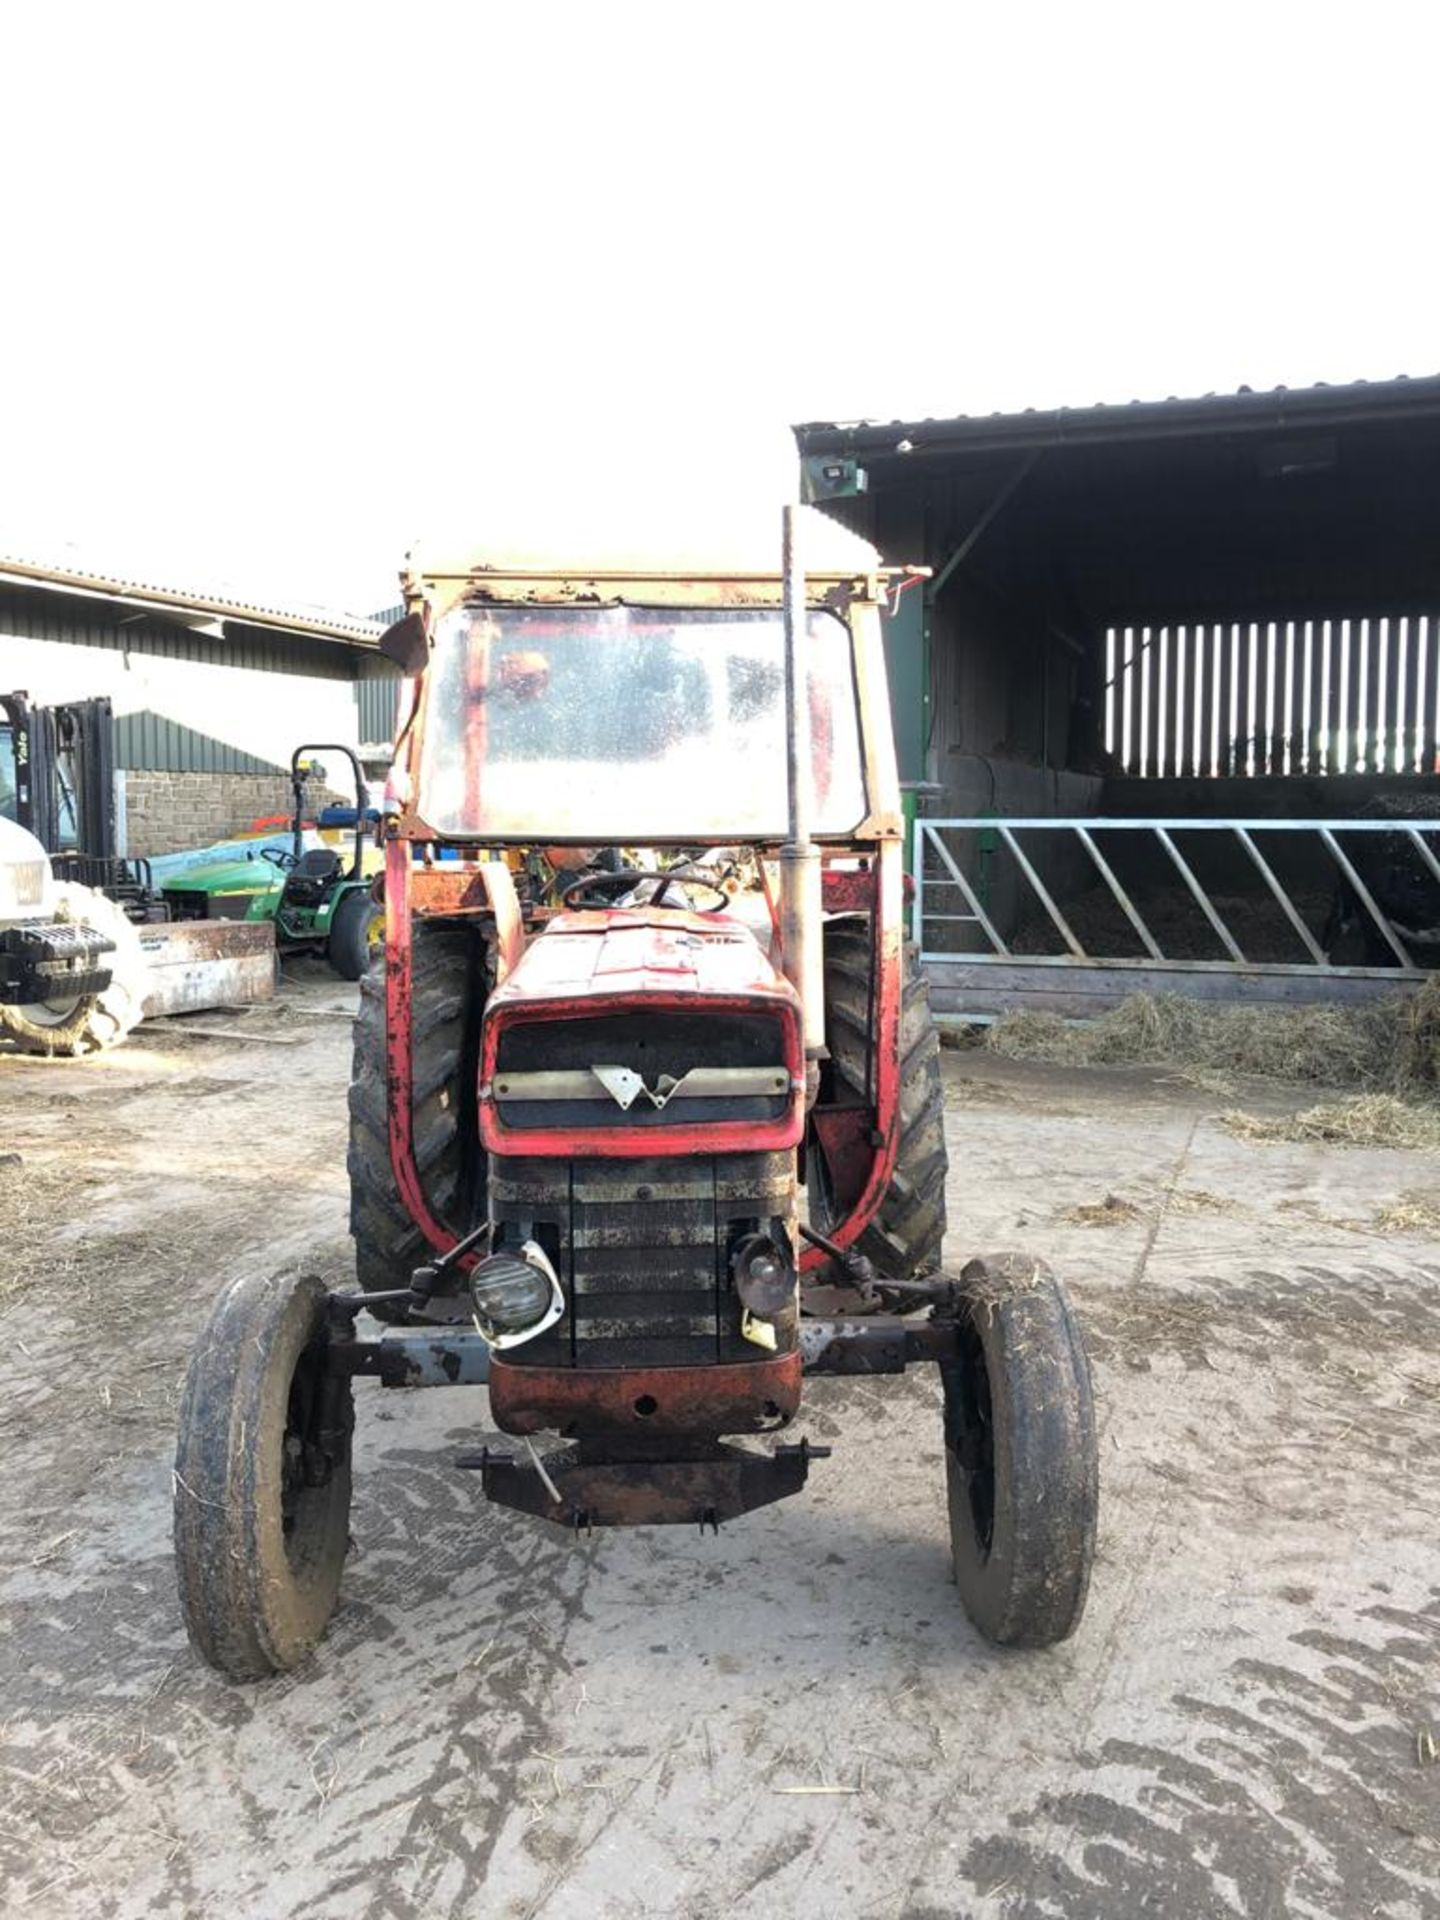 MASSEY FERGUSON 135 TRACTOR, RUNS AND WORKS WELL, REAR PTO, REAR 3 POINT LINKAGE *PLUS VAT* - Image 2 of 5